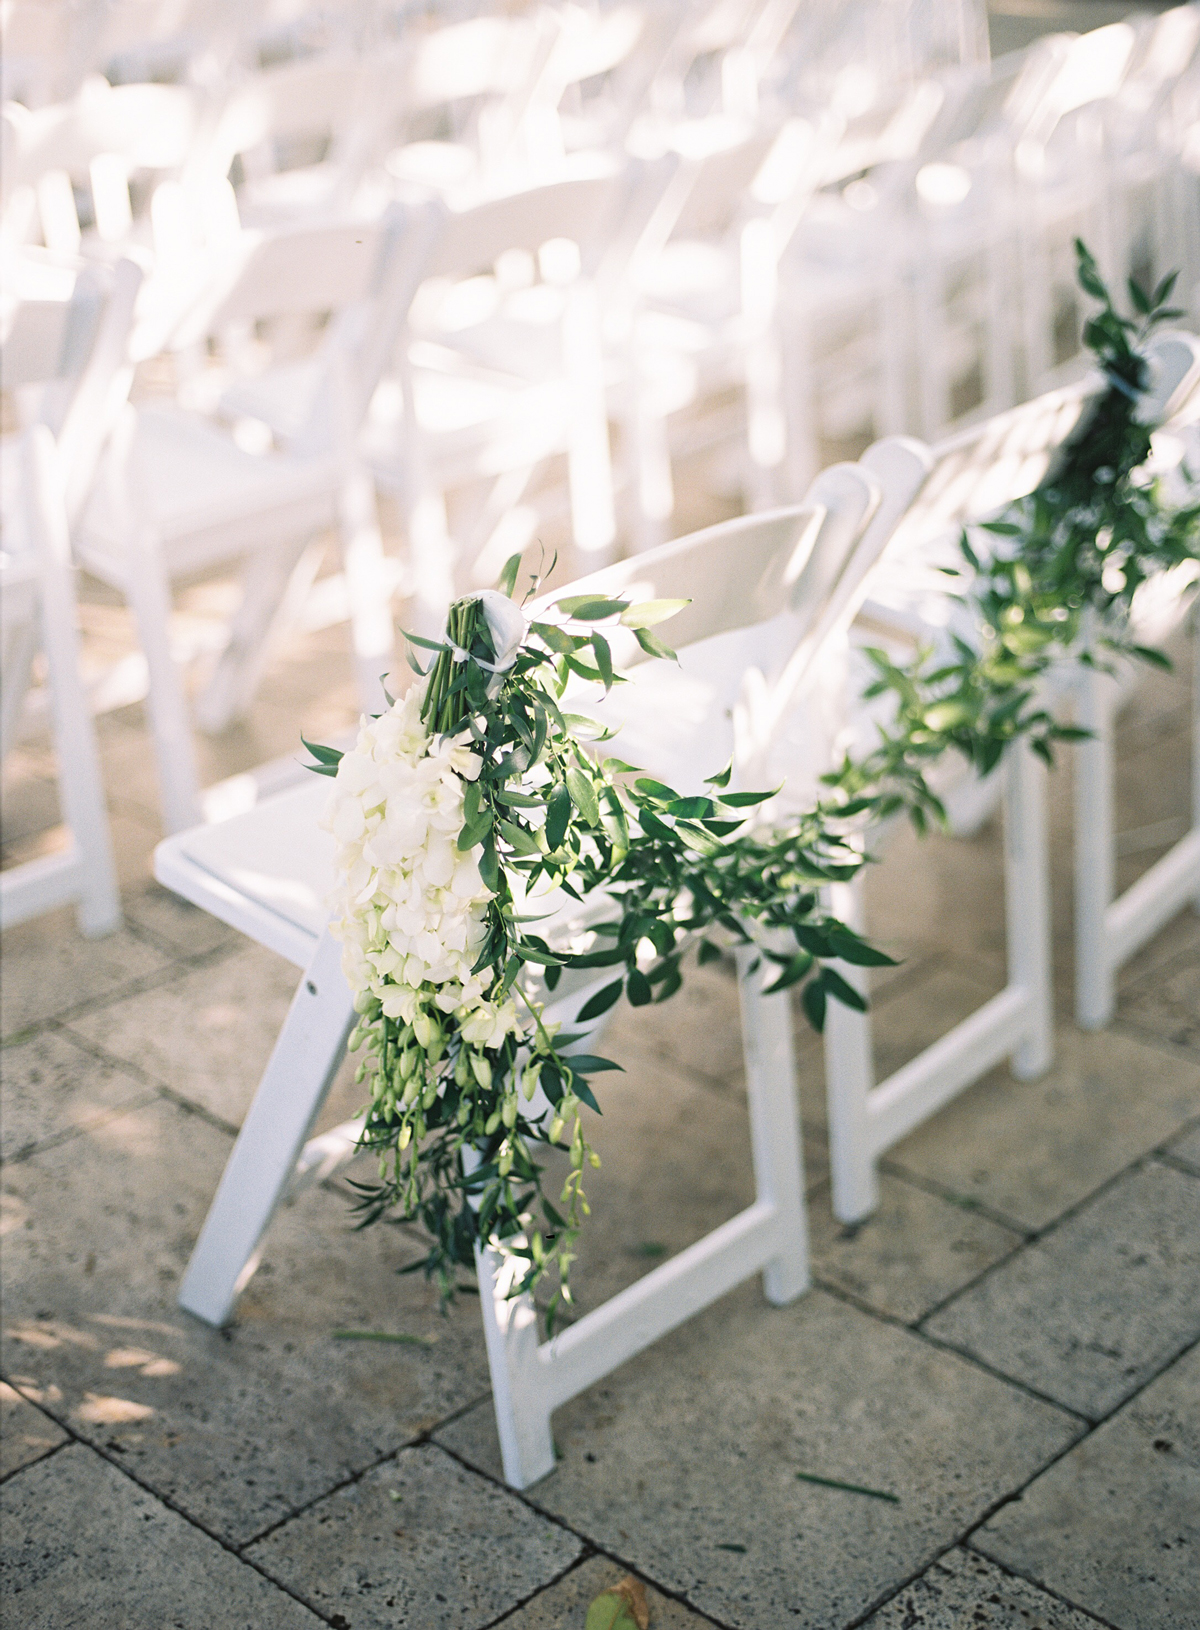 last row ceremony chair decorations white and green floral arrangement adorned to chairs